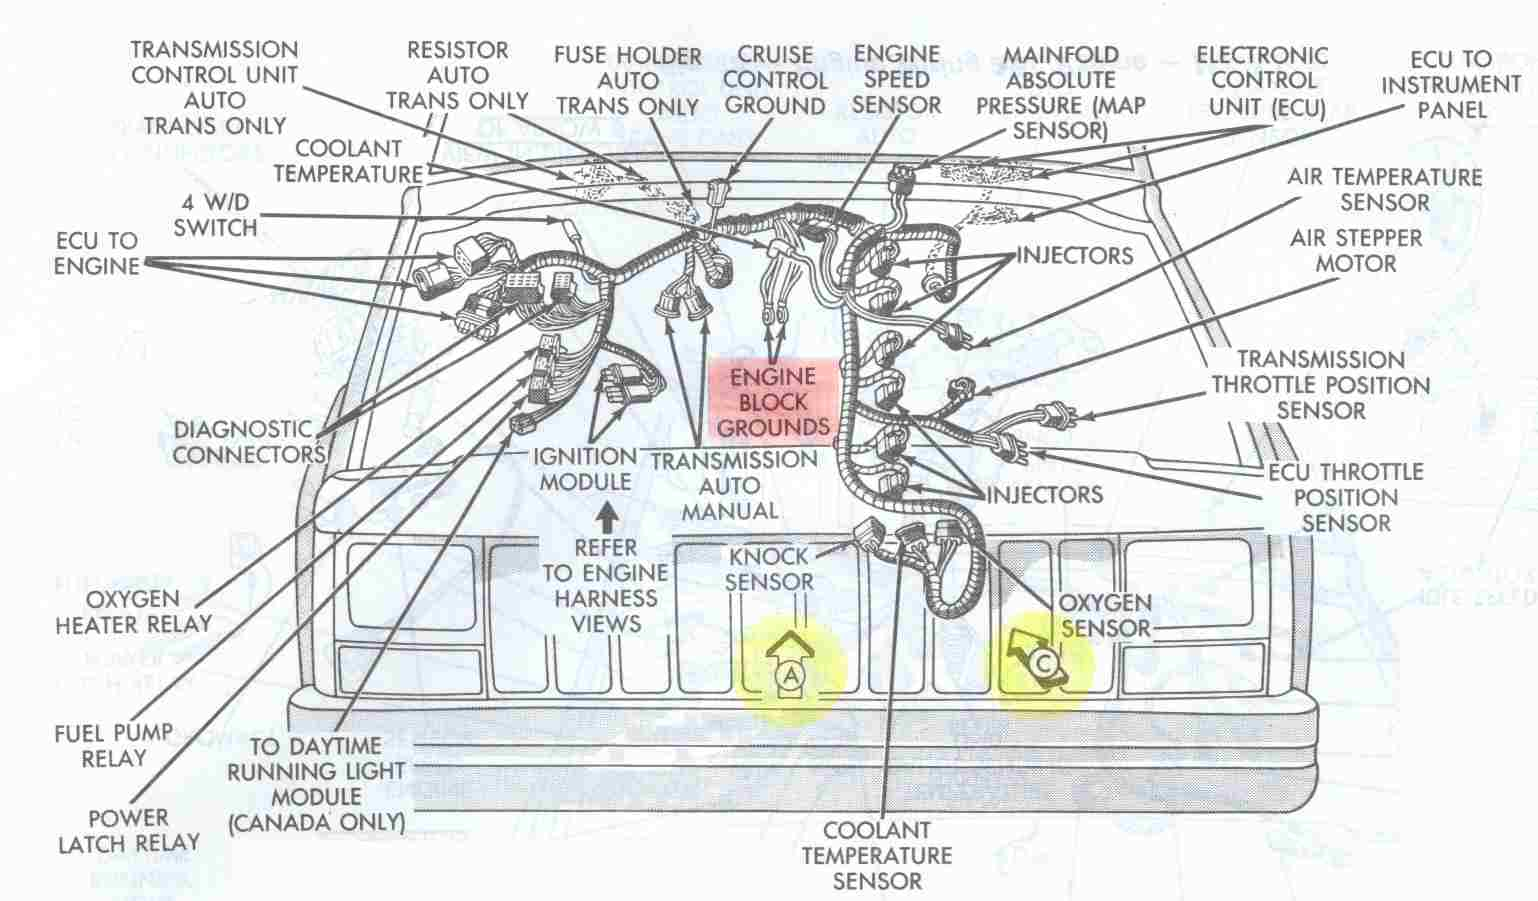 Electrical_Engine_Ground_Points_Overview jeep cherokee electrical diagnosing erratic behavior of engine 2001 jeep grand cherokee transmission wiring harness at readyjetset.co